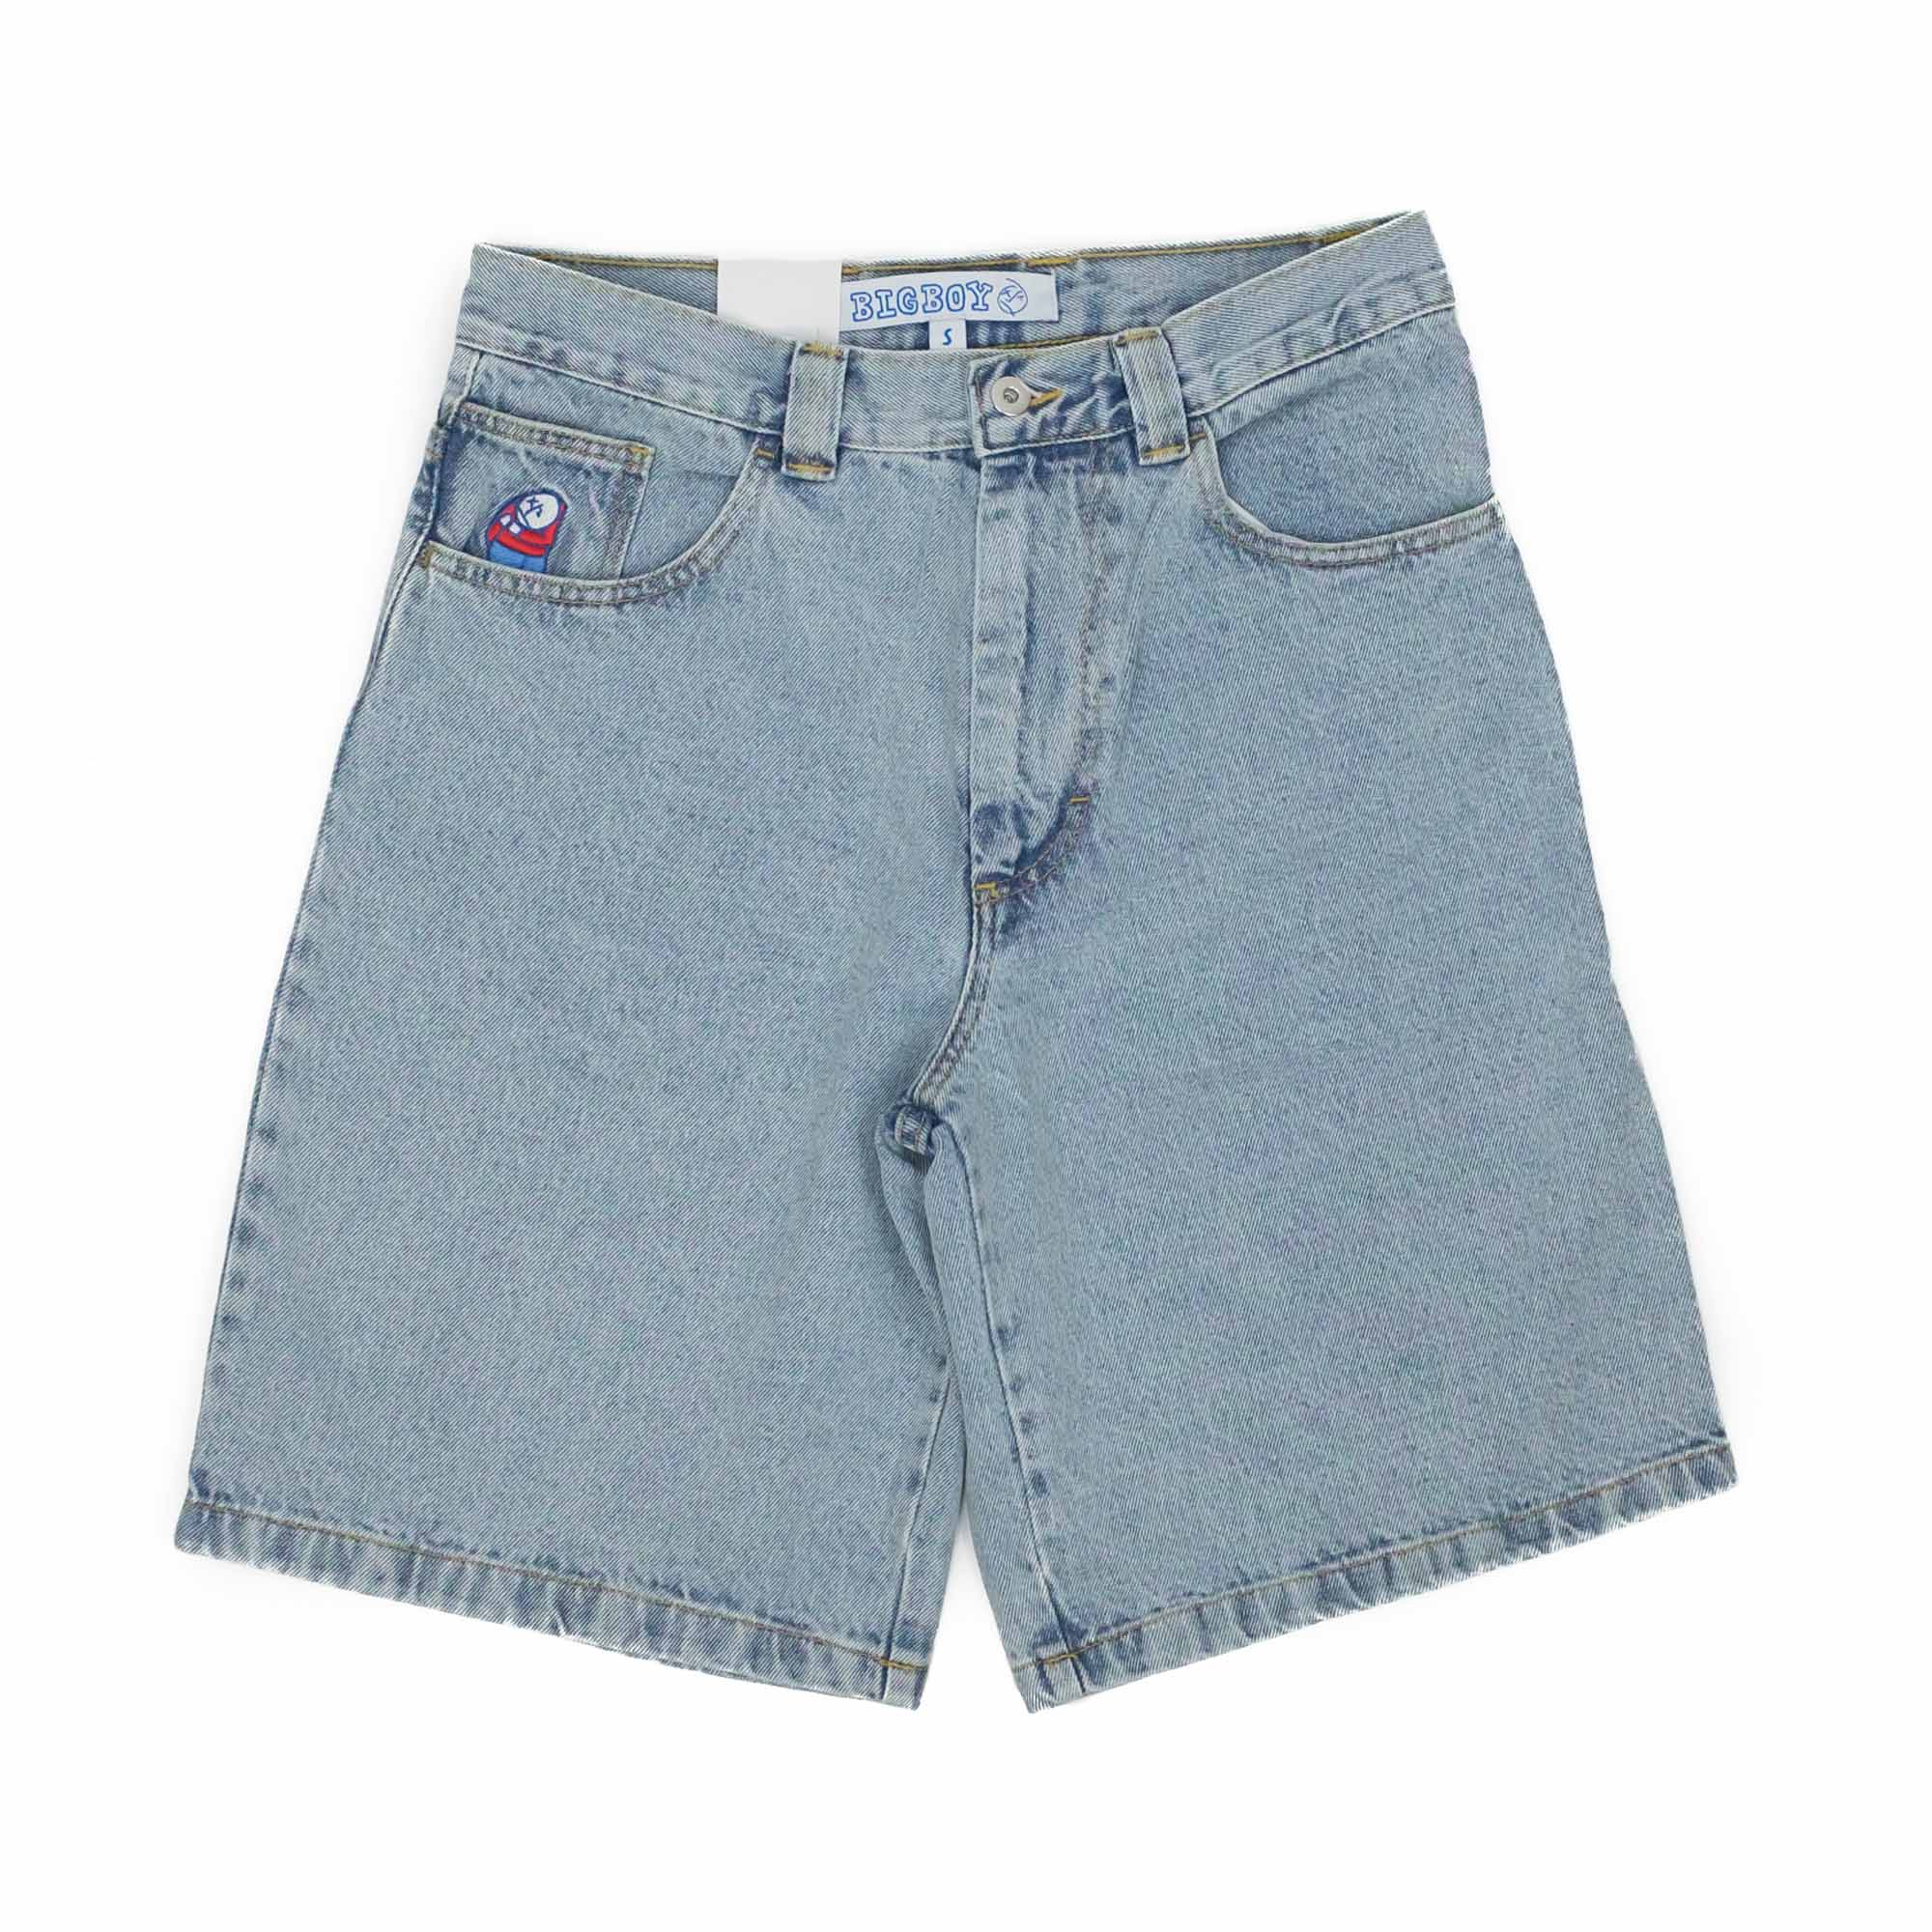 Polar Skate Co. Big Boy Shorts - Light Blue